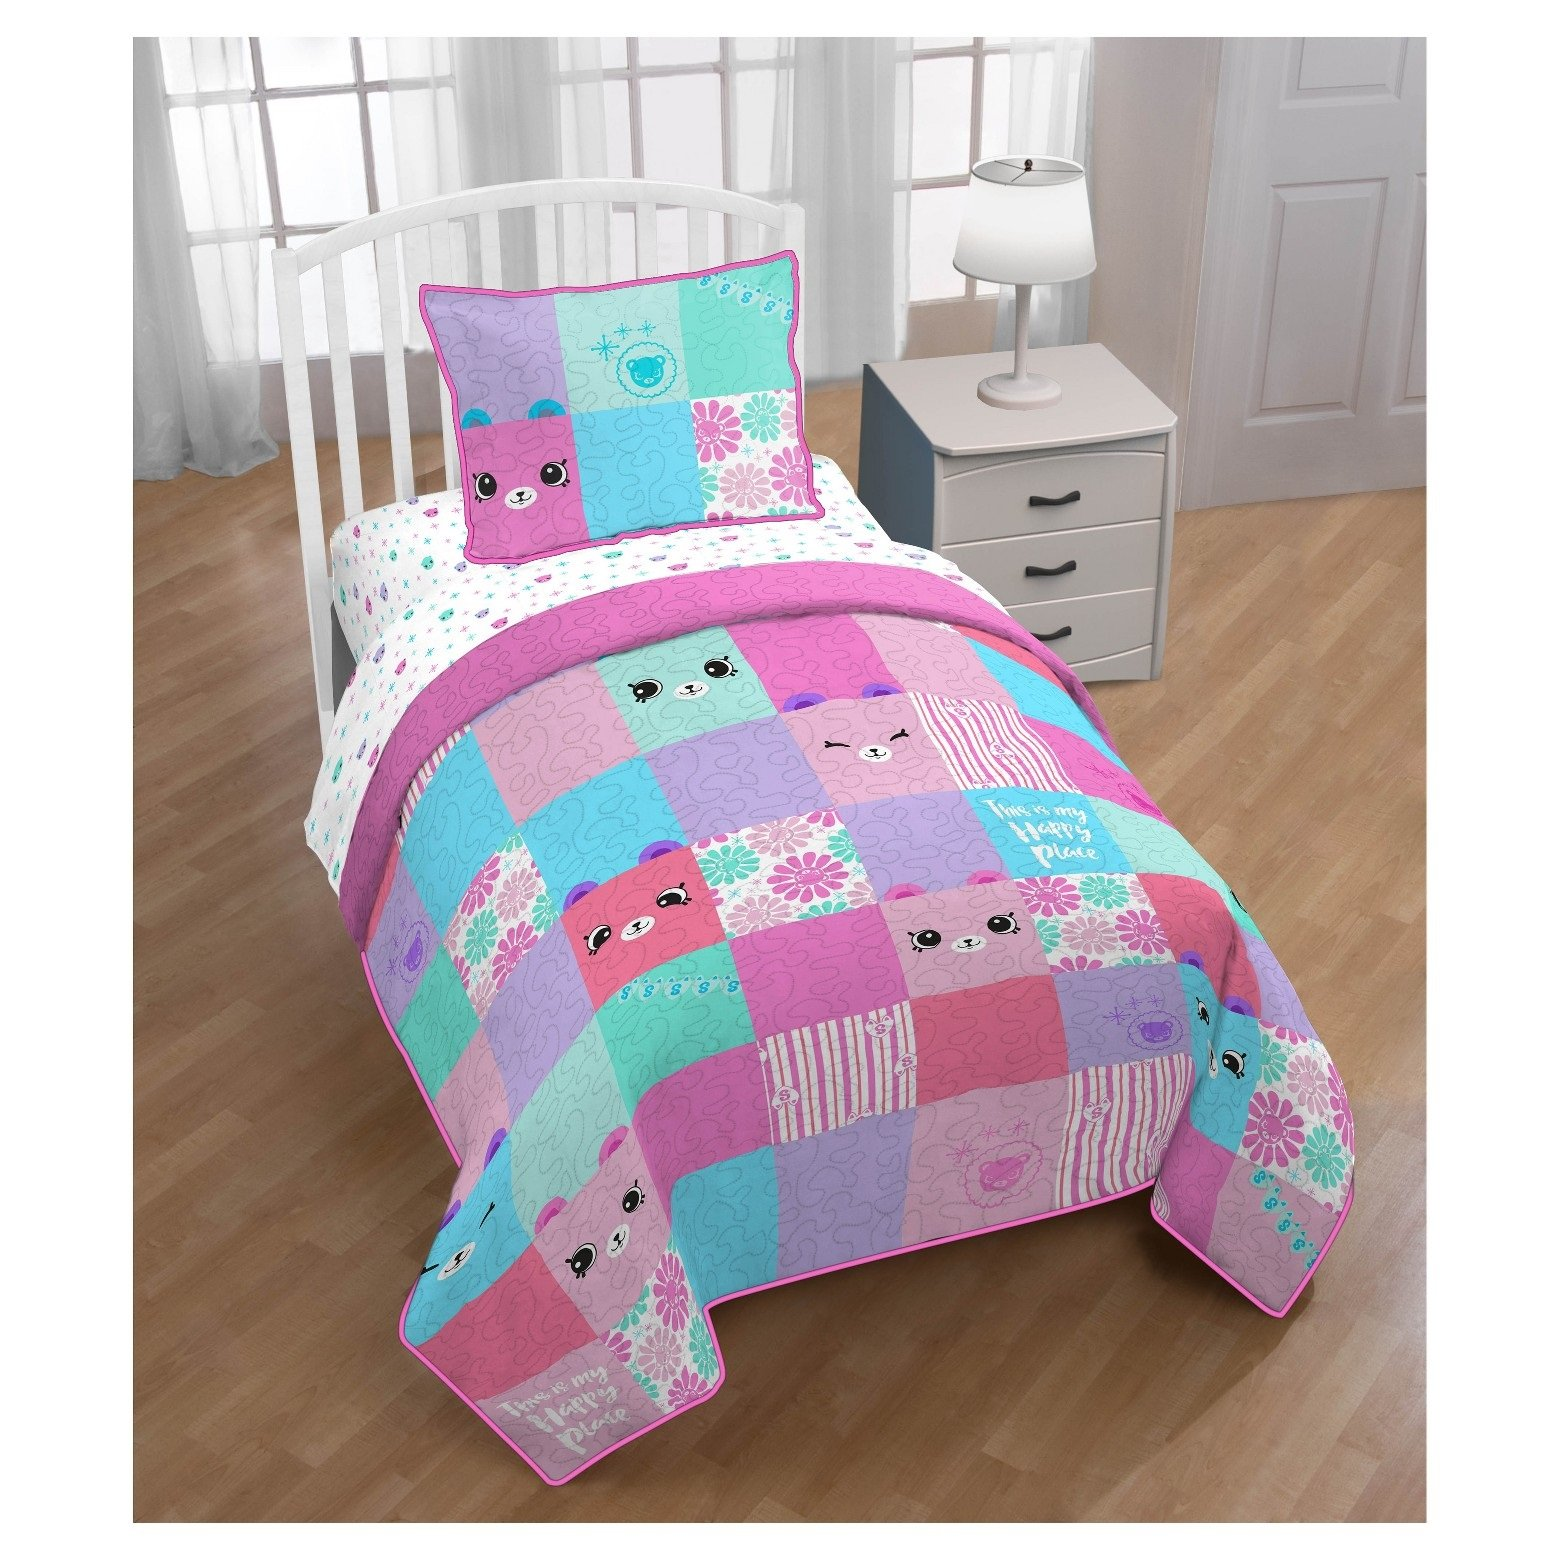 Shopkins Happy Places Quilt & Sham (Twin/Full) by Shopkins